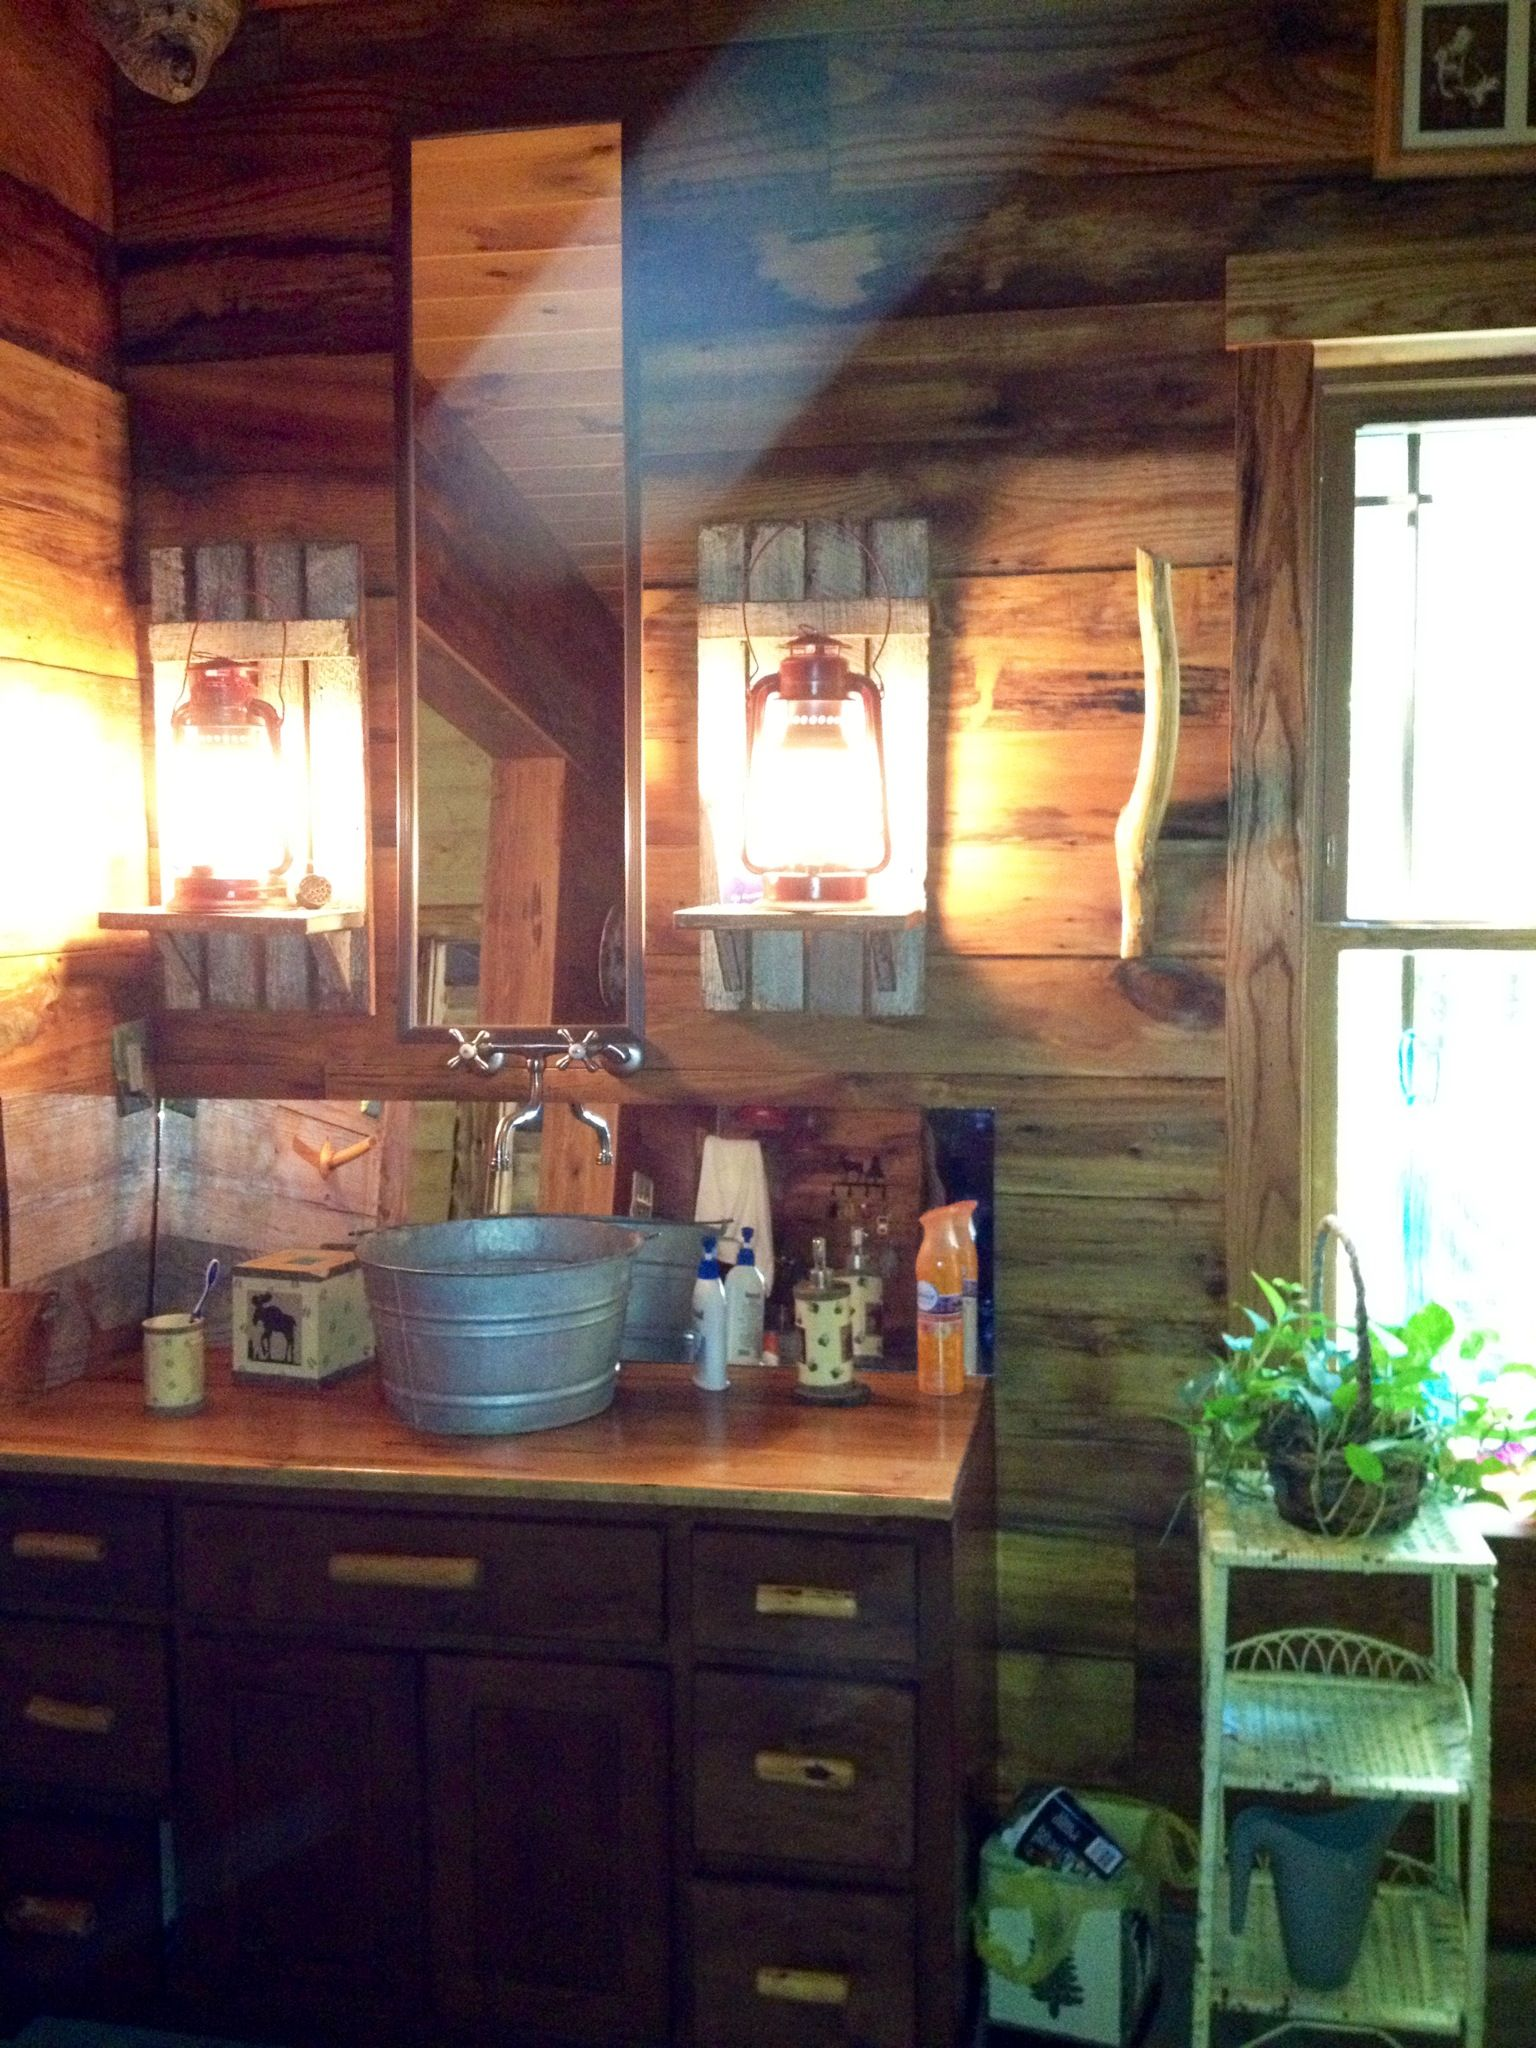 Small wall mount faucet - Galvanized Bucket Sink With Wall Mount Faucet Diy Electrified Lanterns With Barnwood Shelves And Barnwood Walls